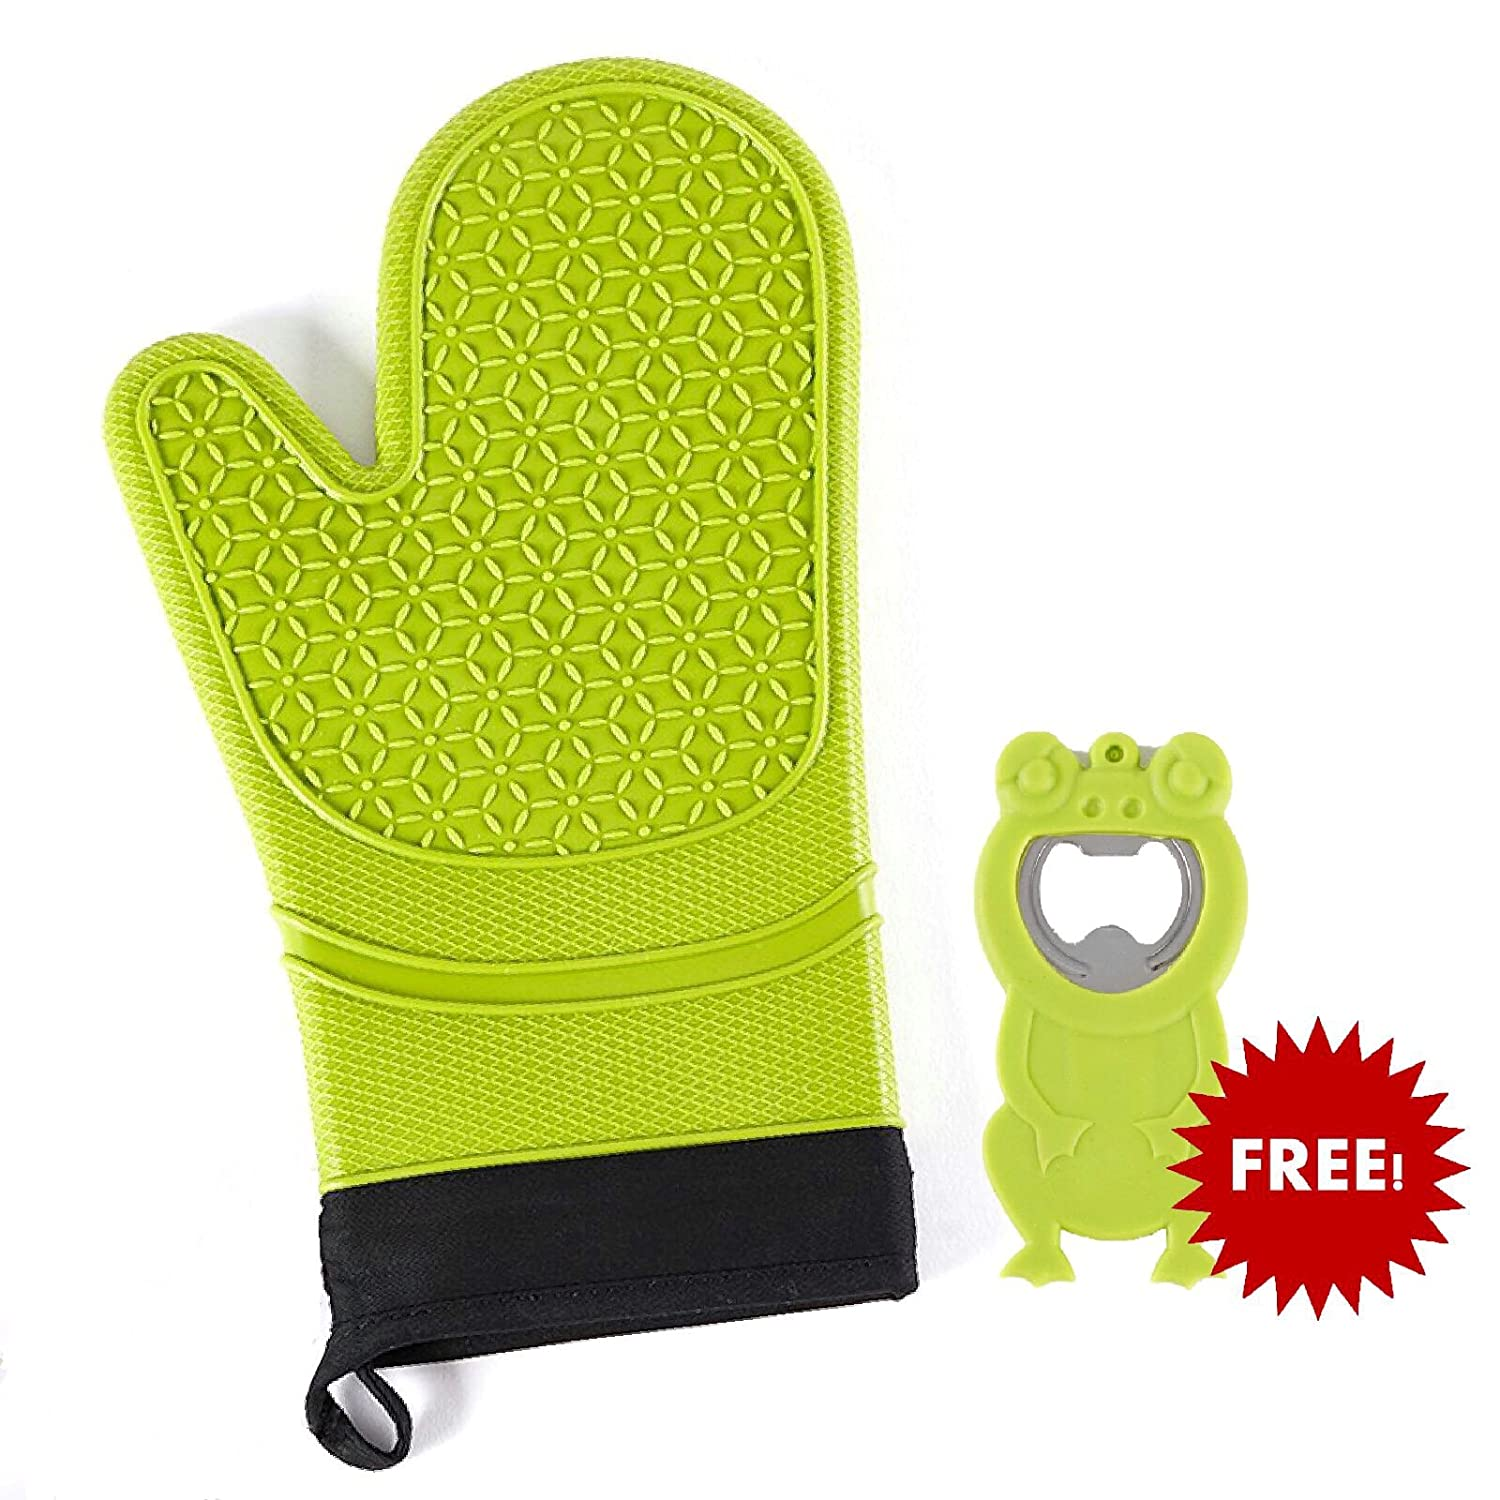 Konigswerk Silicone Oven Mitt - Heat Resistant Gloves for Cooking - Easy Gripping - Durable - With A Cute Frog Bottle Opener As Free Gift (Green)